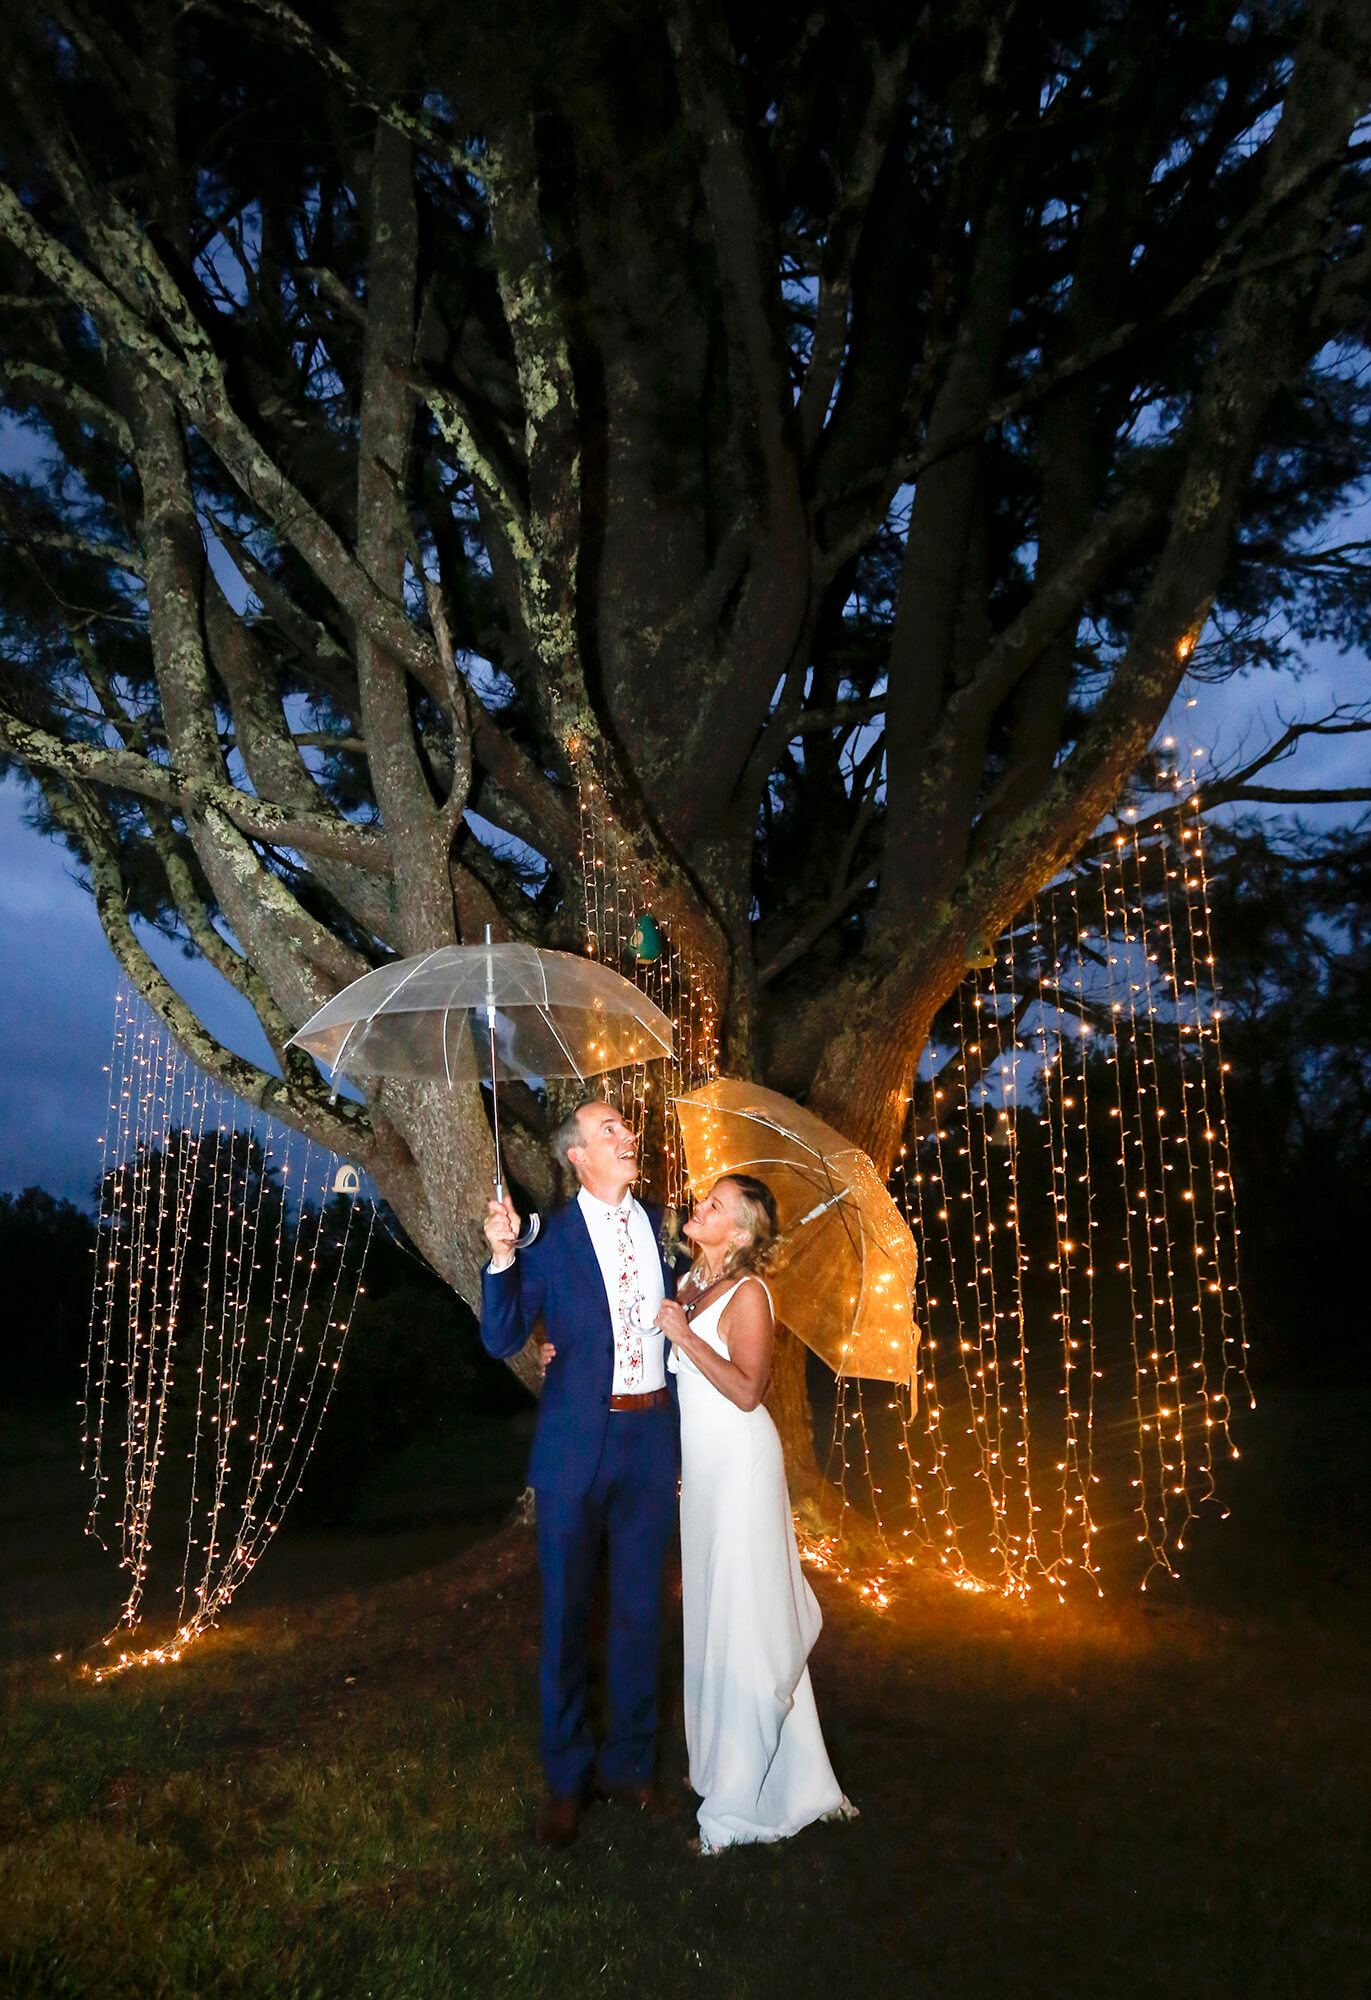 Wedding photography of a couple holding umbrellas at night under a large tree with lights